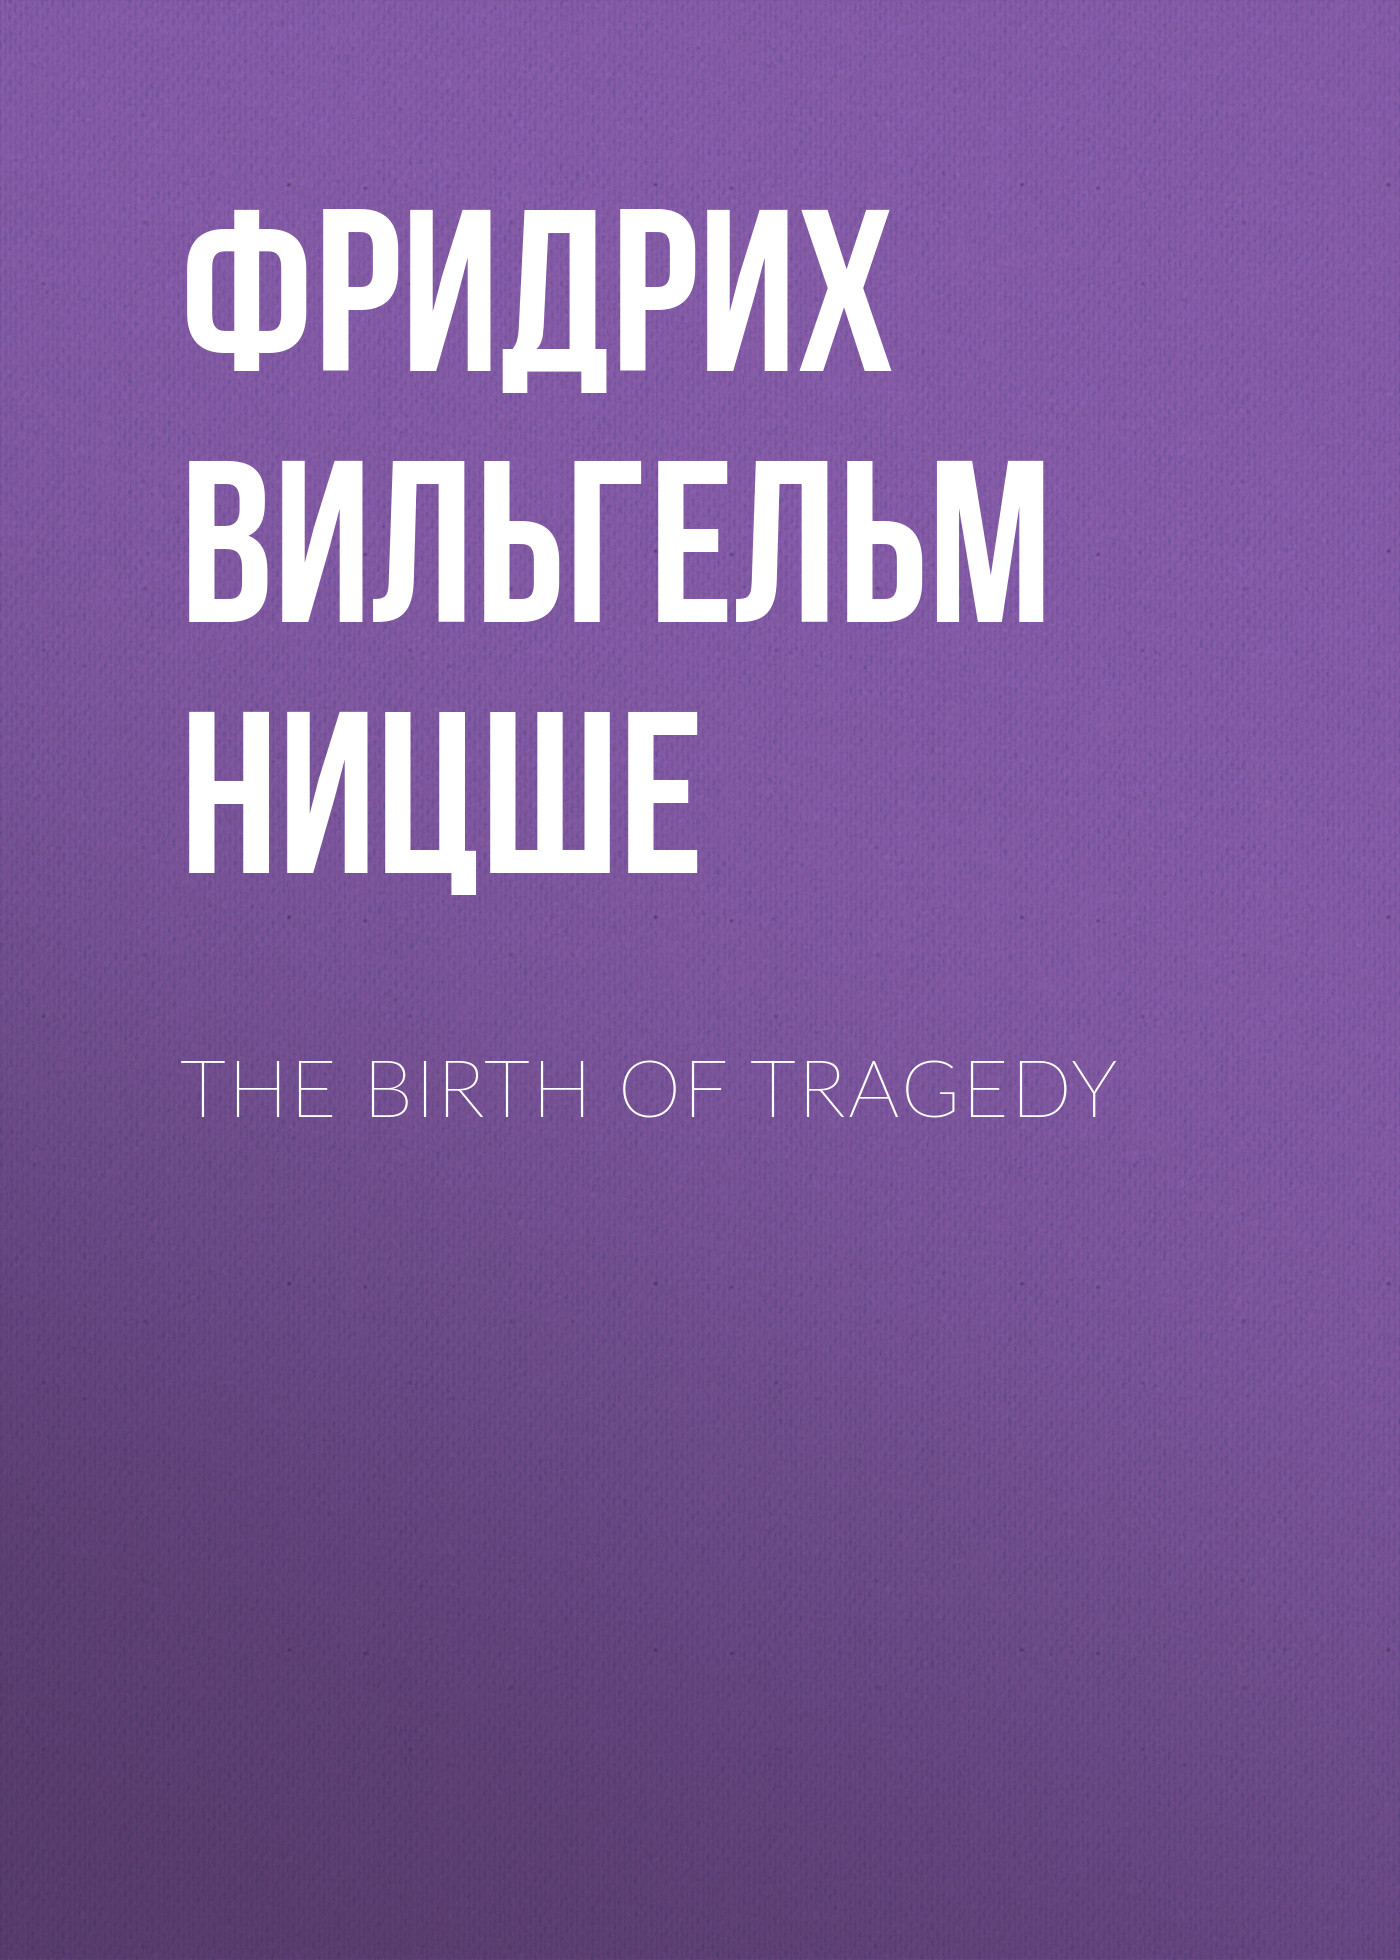 Фридрих Вильгельм Ницше The Birth of Tragedy